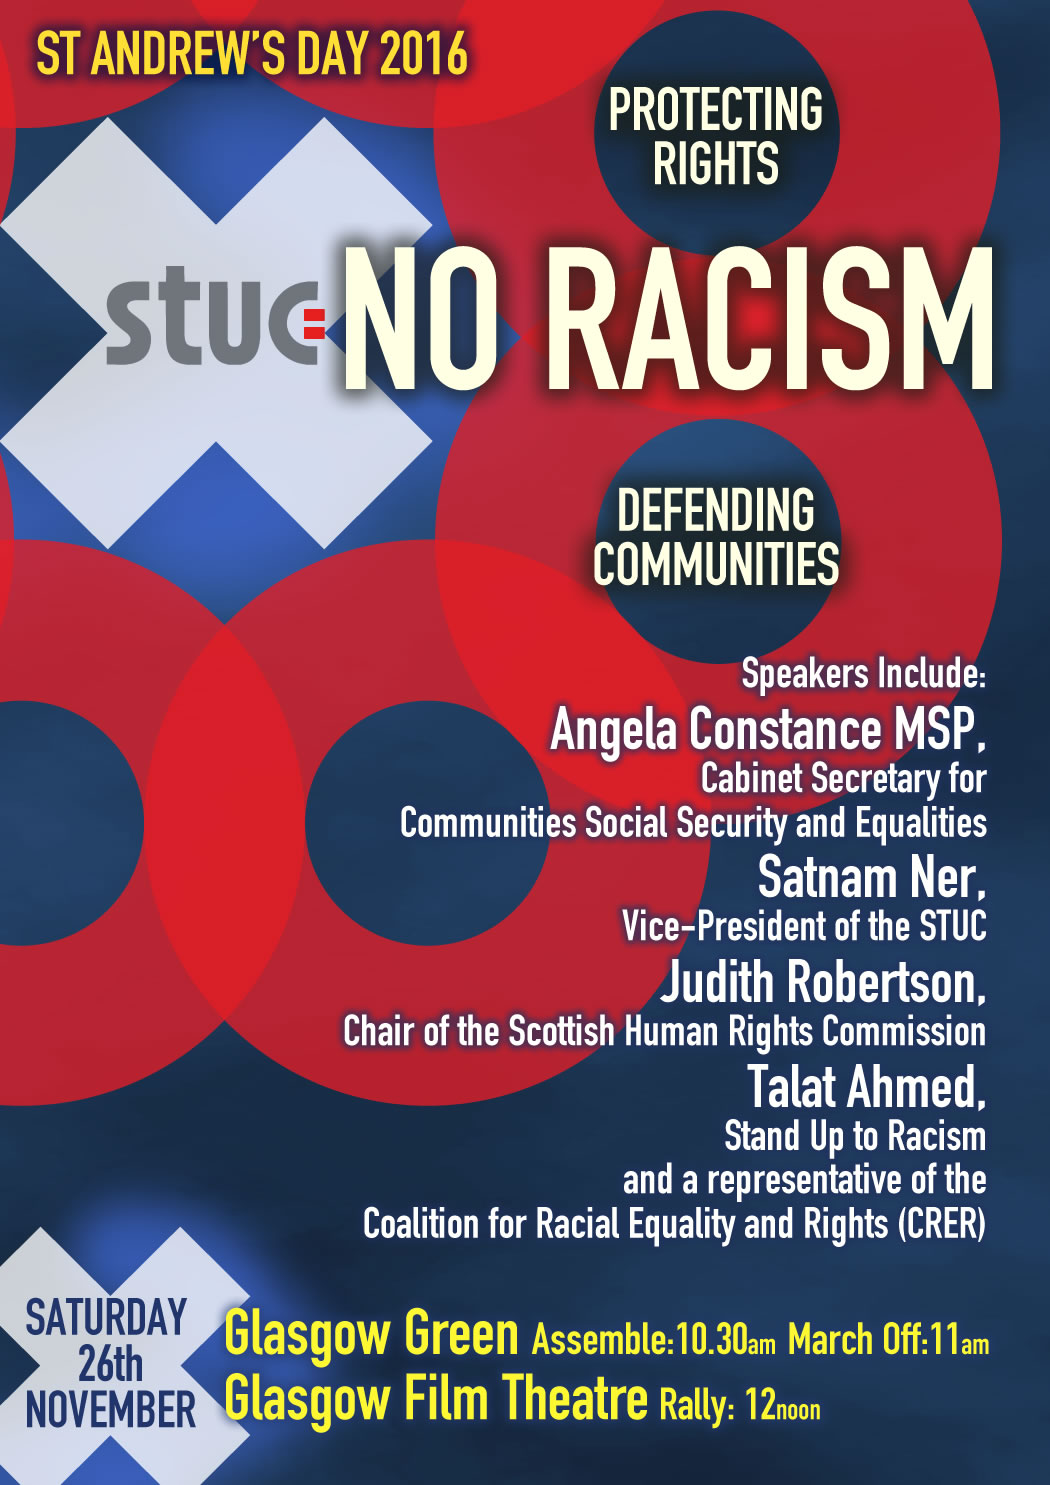 St Andrew's Day Anti-Racism March and Rally 26 November